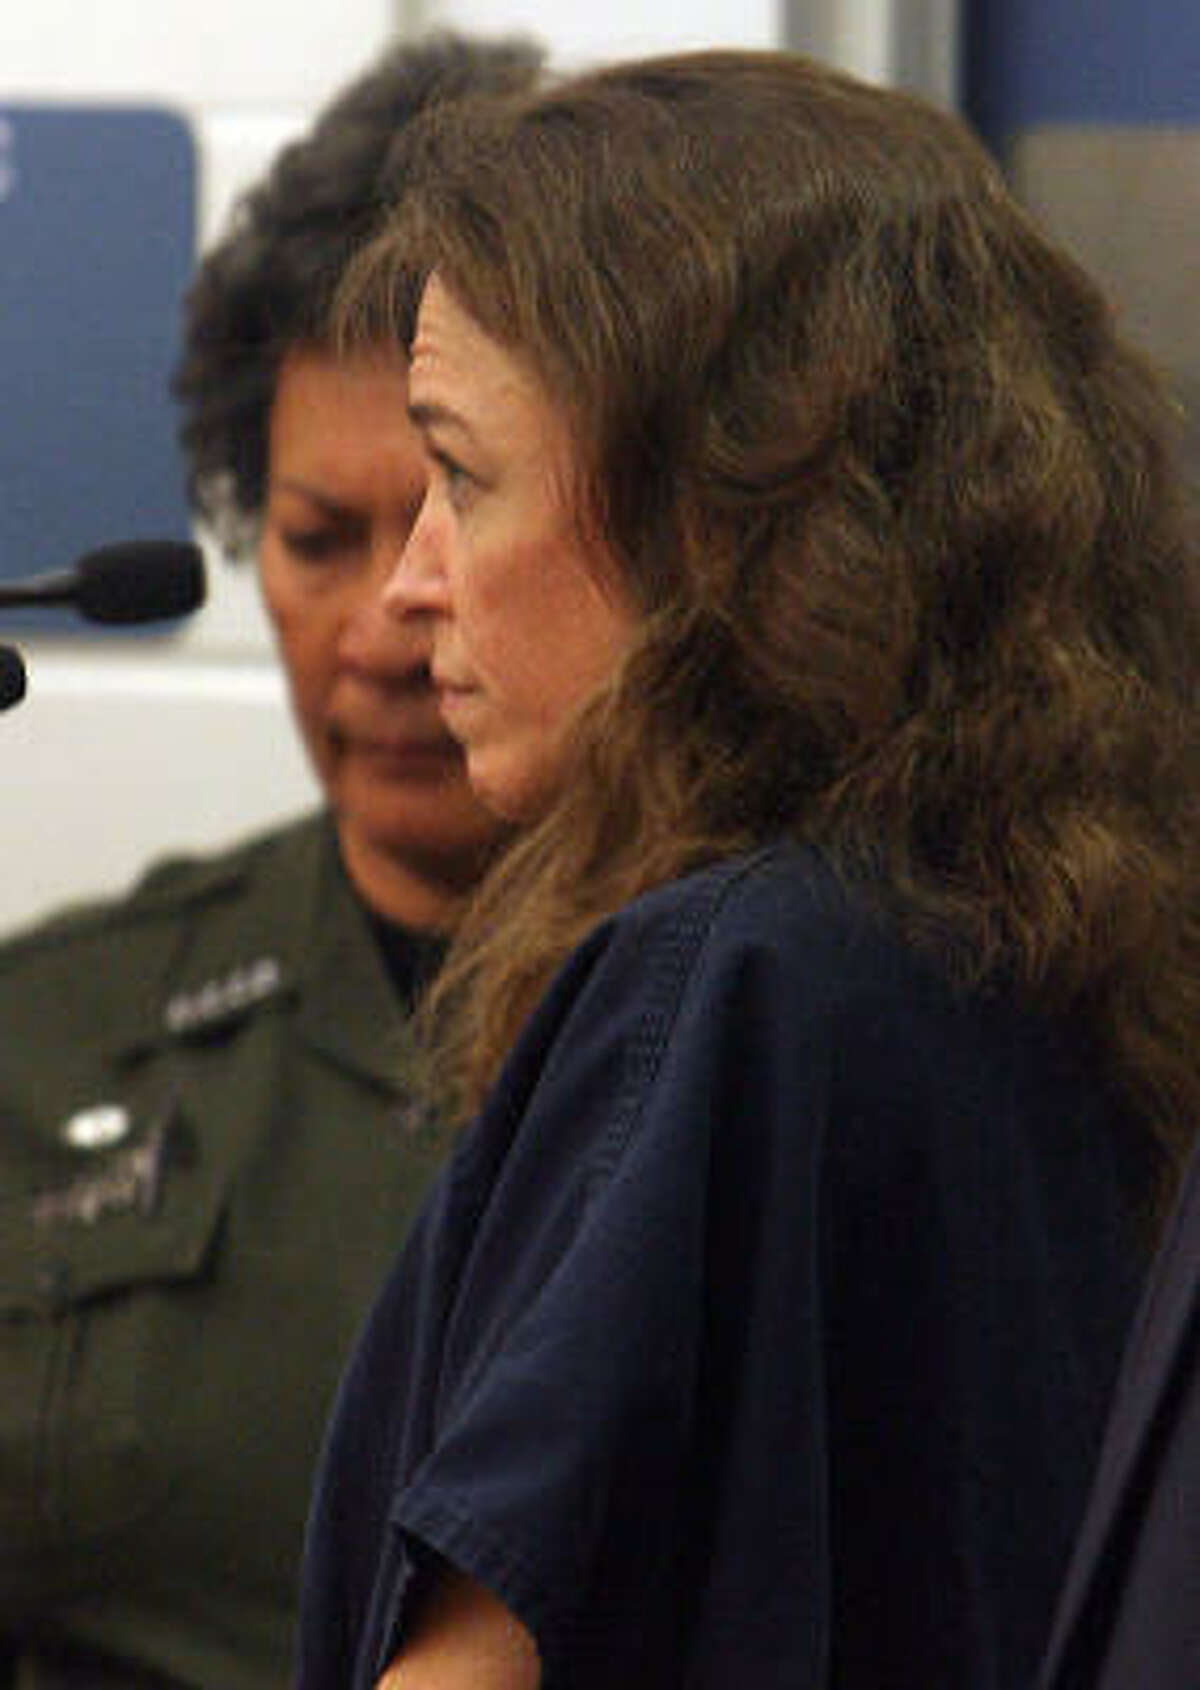 Lisa Nowak, foreground, makes her initial court appearance Feb. 6 in Orlando, Fla.